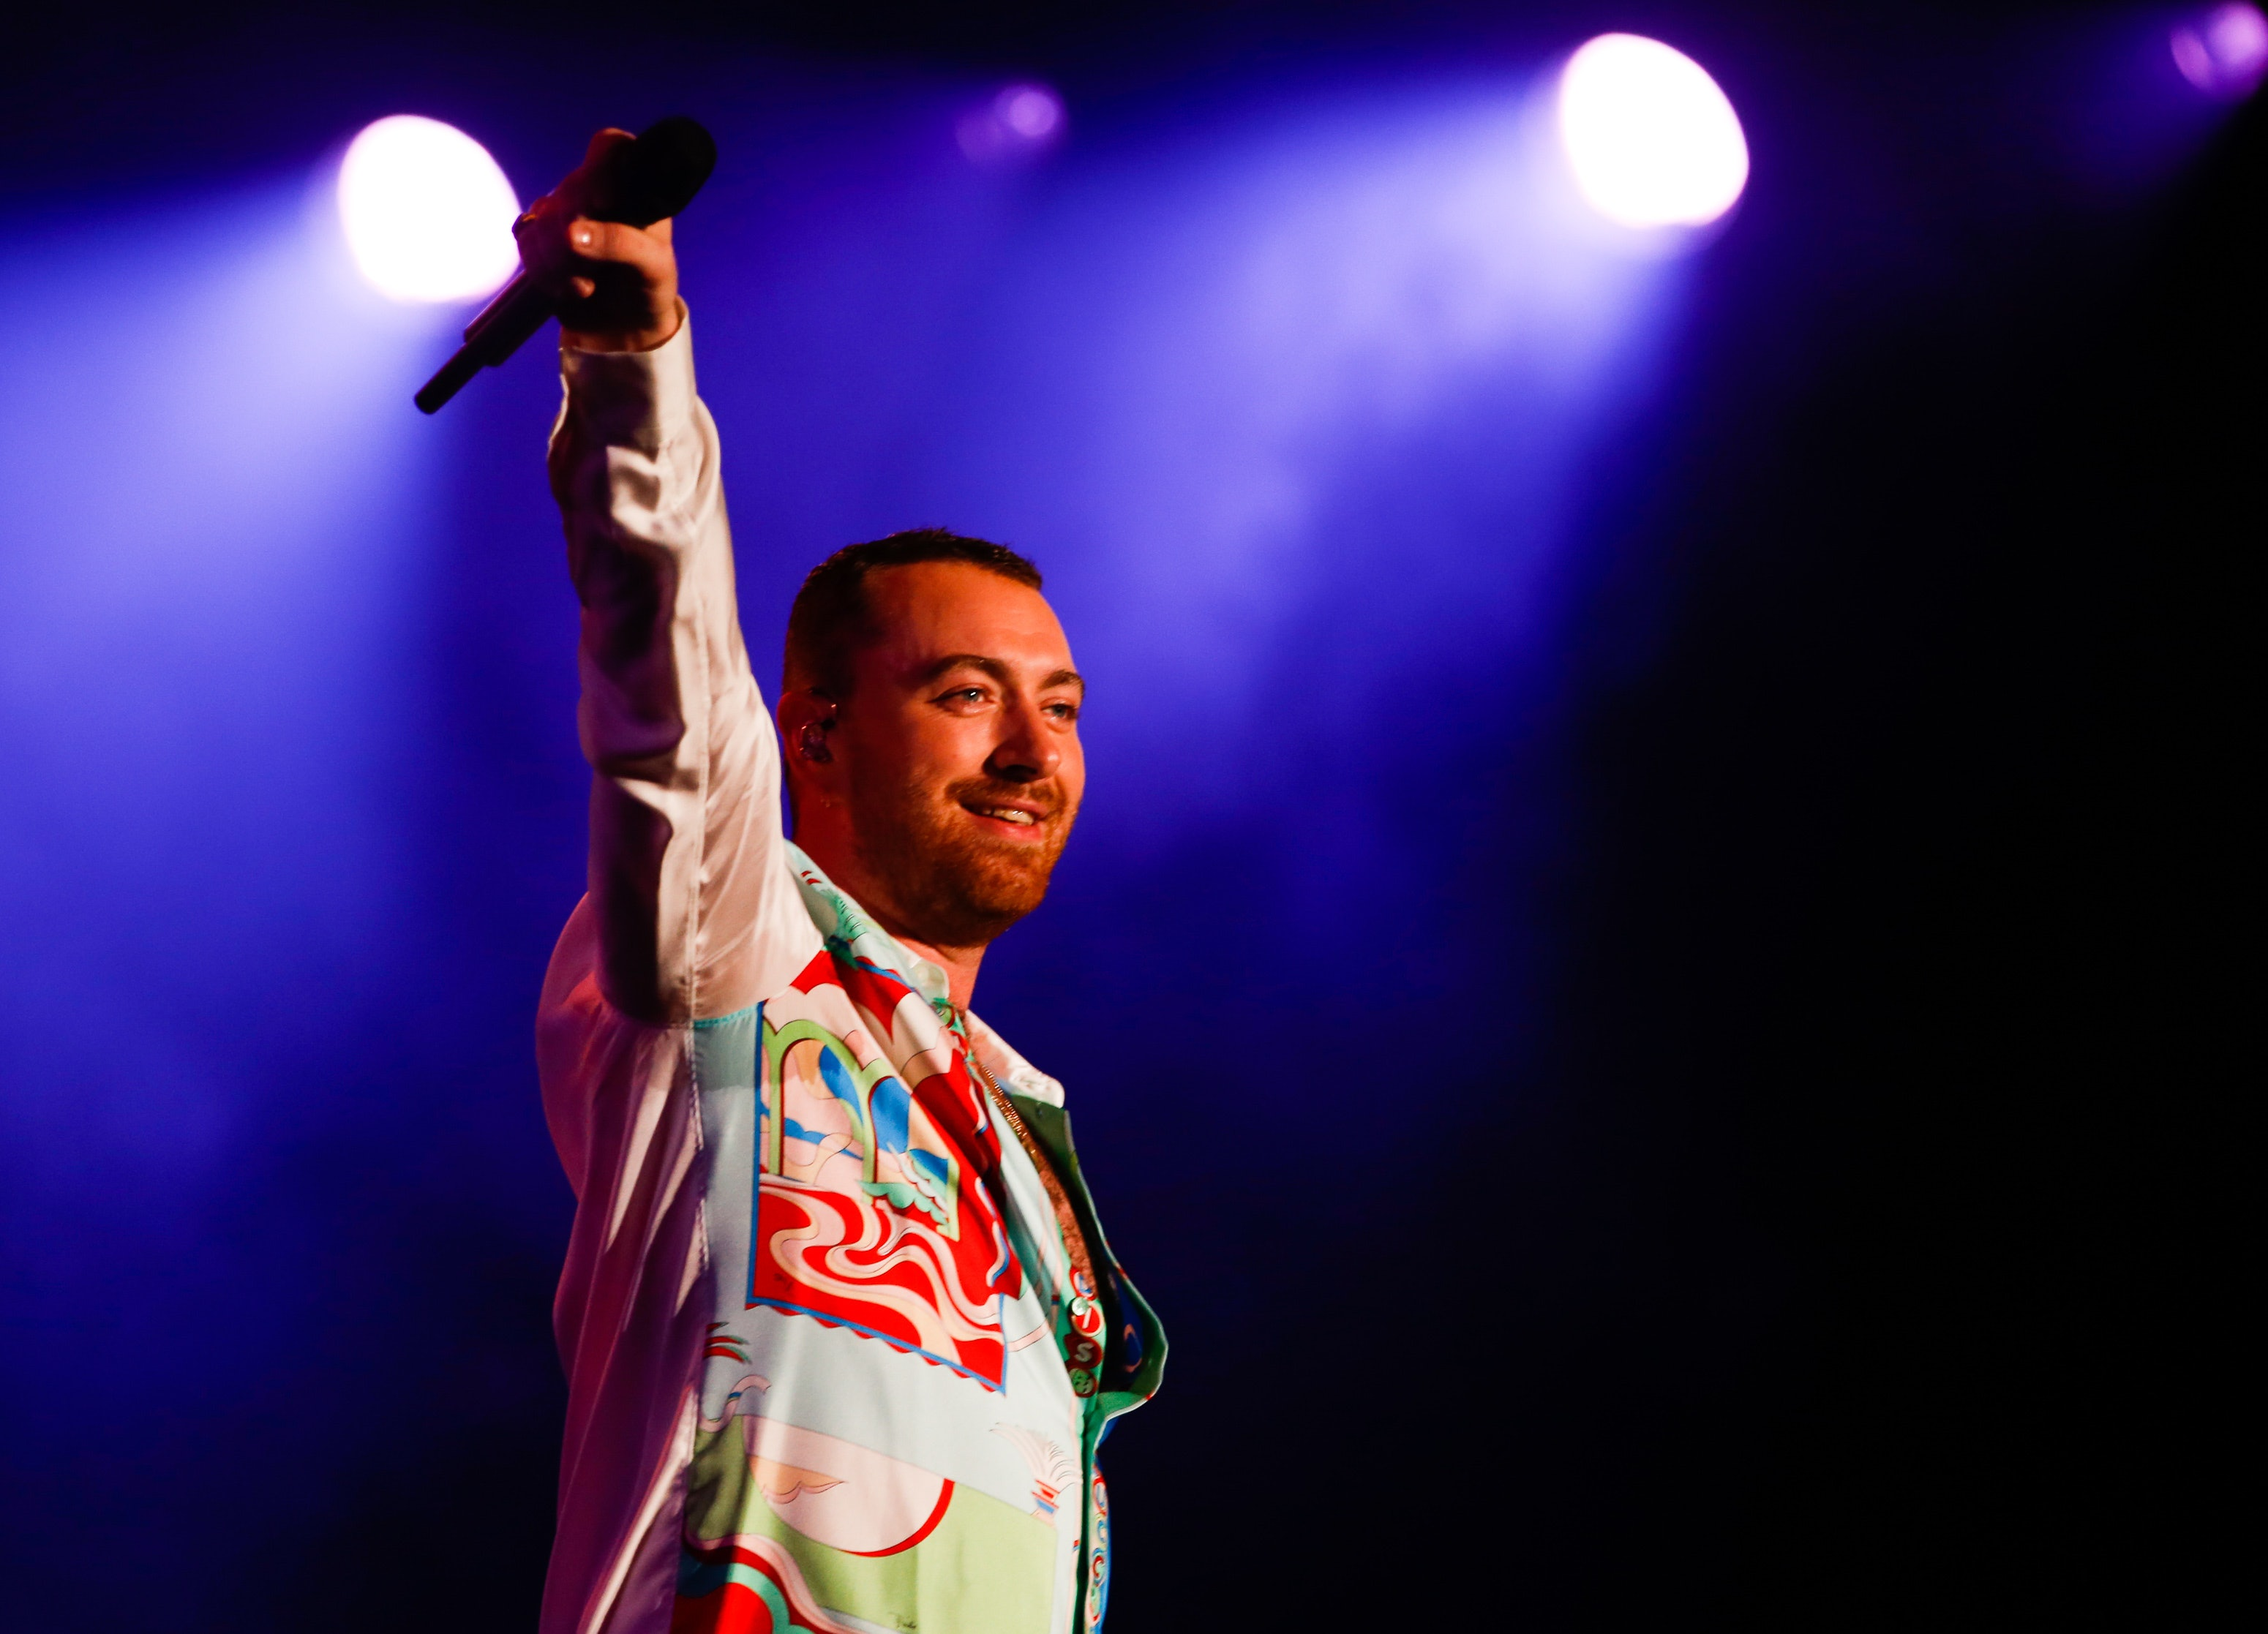 Sam Smith Tour Dates 2020 Will Sam Smith Tour The UK In 2020? The Singer May Have A Third